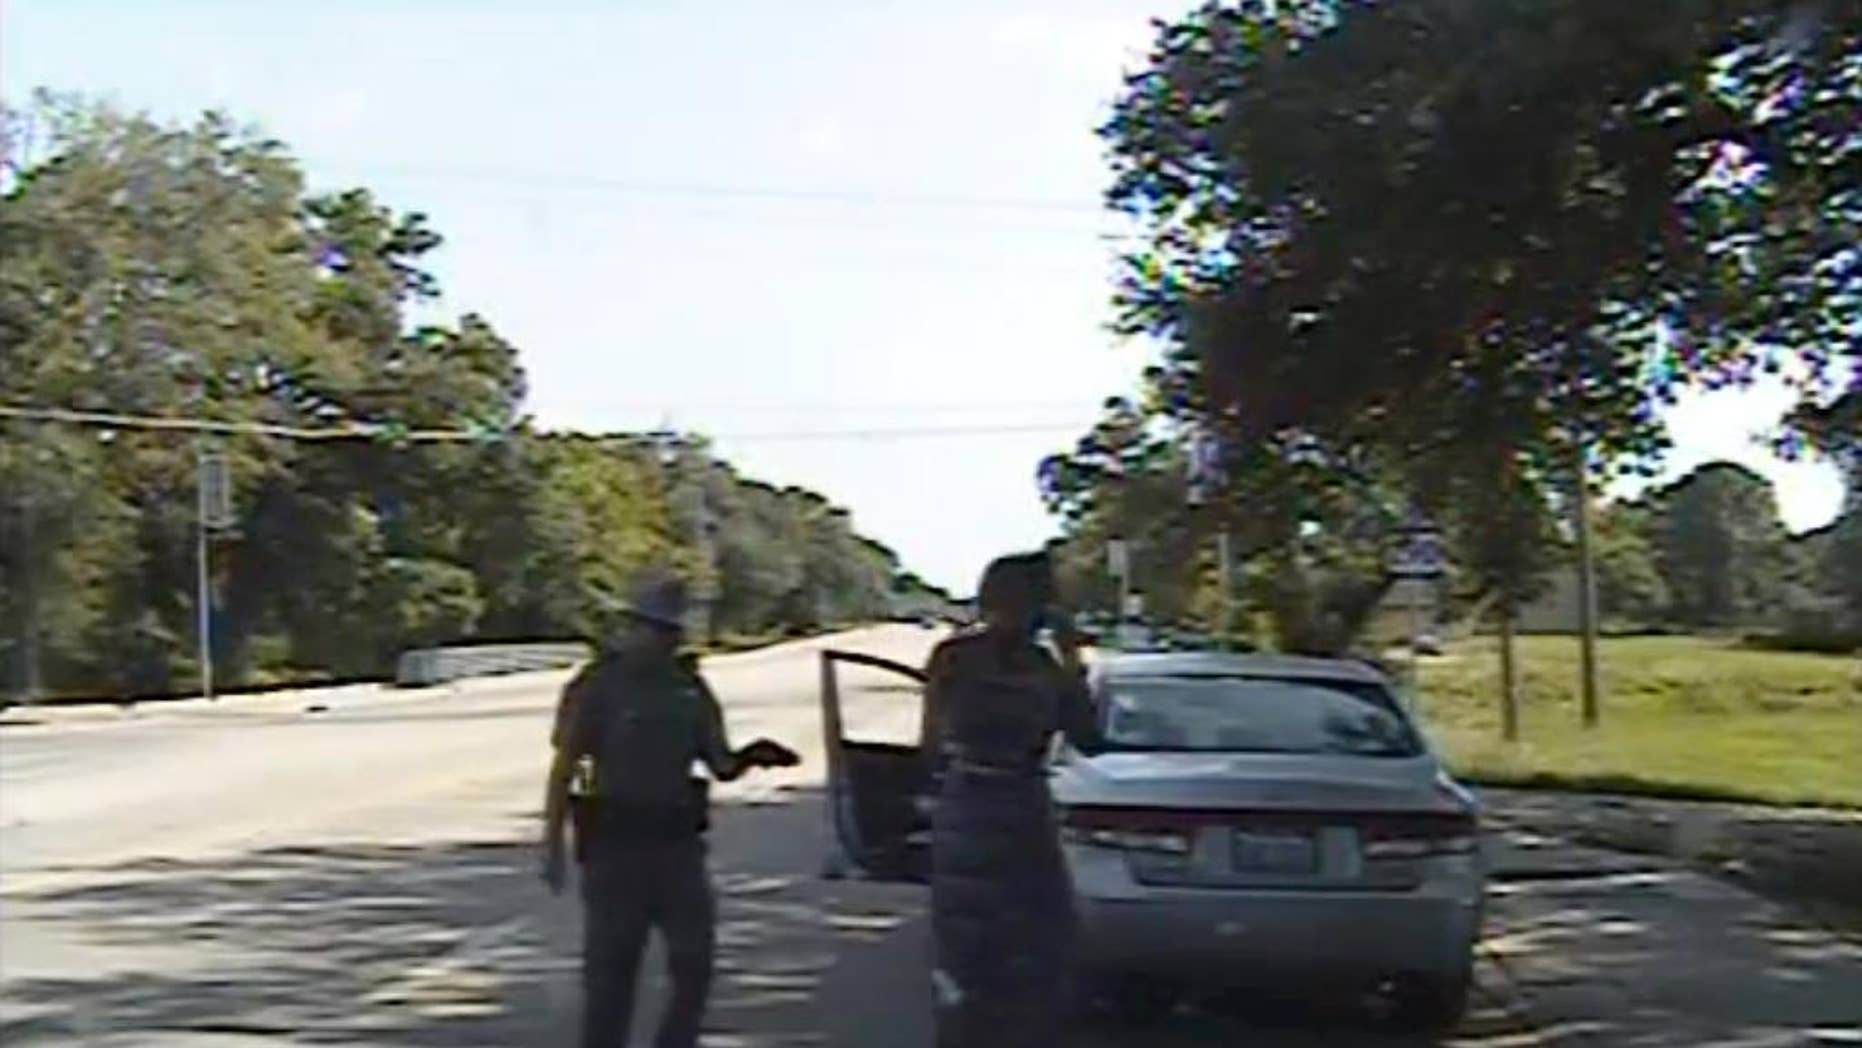 FILE - In this July 10, 2015, file frame from dashcam video provided by the Texas Department of Public Safety, trooper Brian Encinia arrests Sandra Bland after she became combative during a routine traffic stop in Waller County, Texas. Bland's family filed a wrongful-death lawsuit Tuesday, Aug. 4, 2015, against Encinia and other officials, saying it was a last resort after being unable to get enough information about the case. (Texas Department of Public Safety via AP, File)